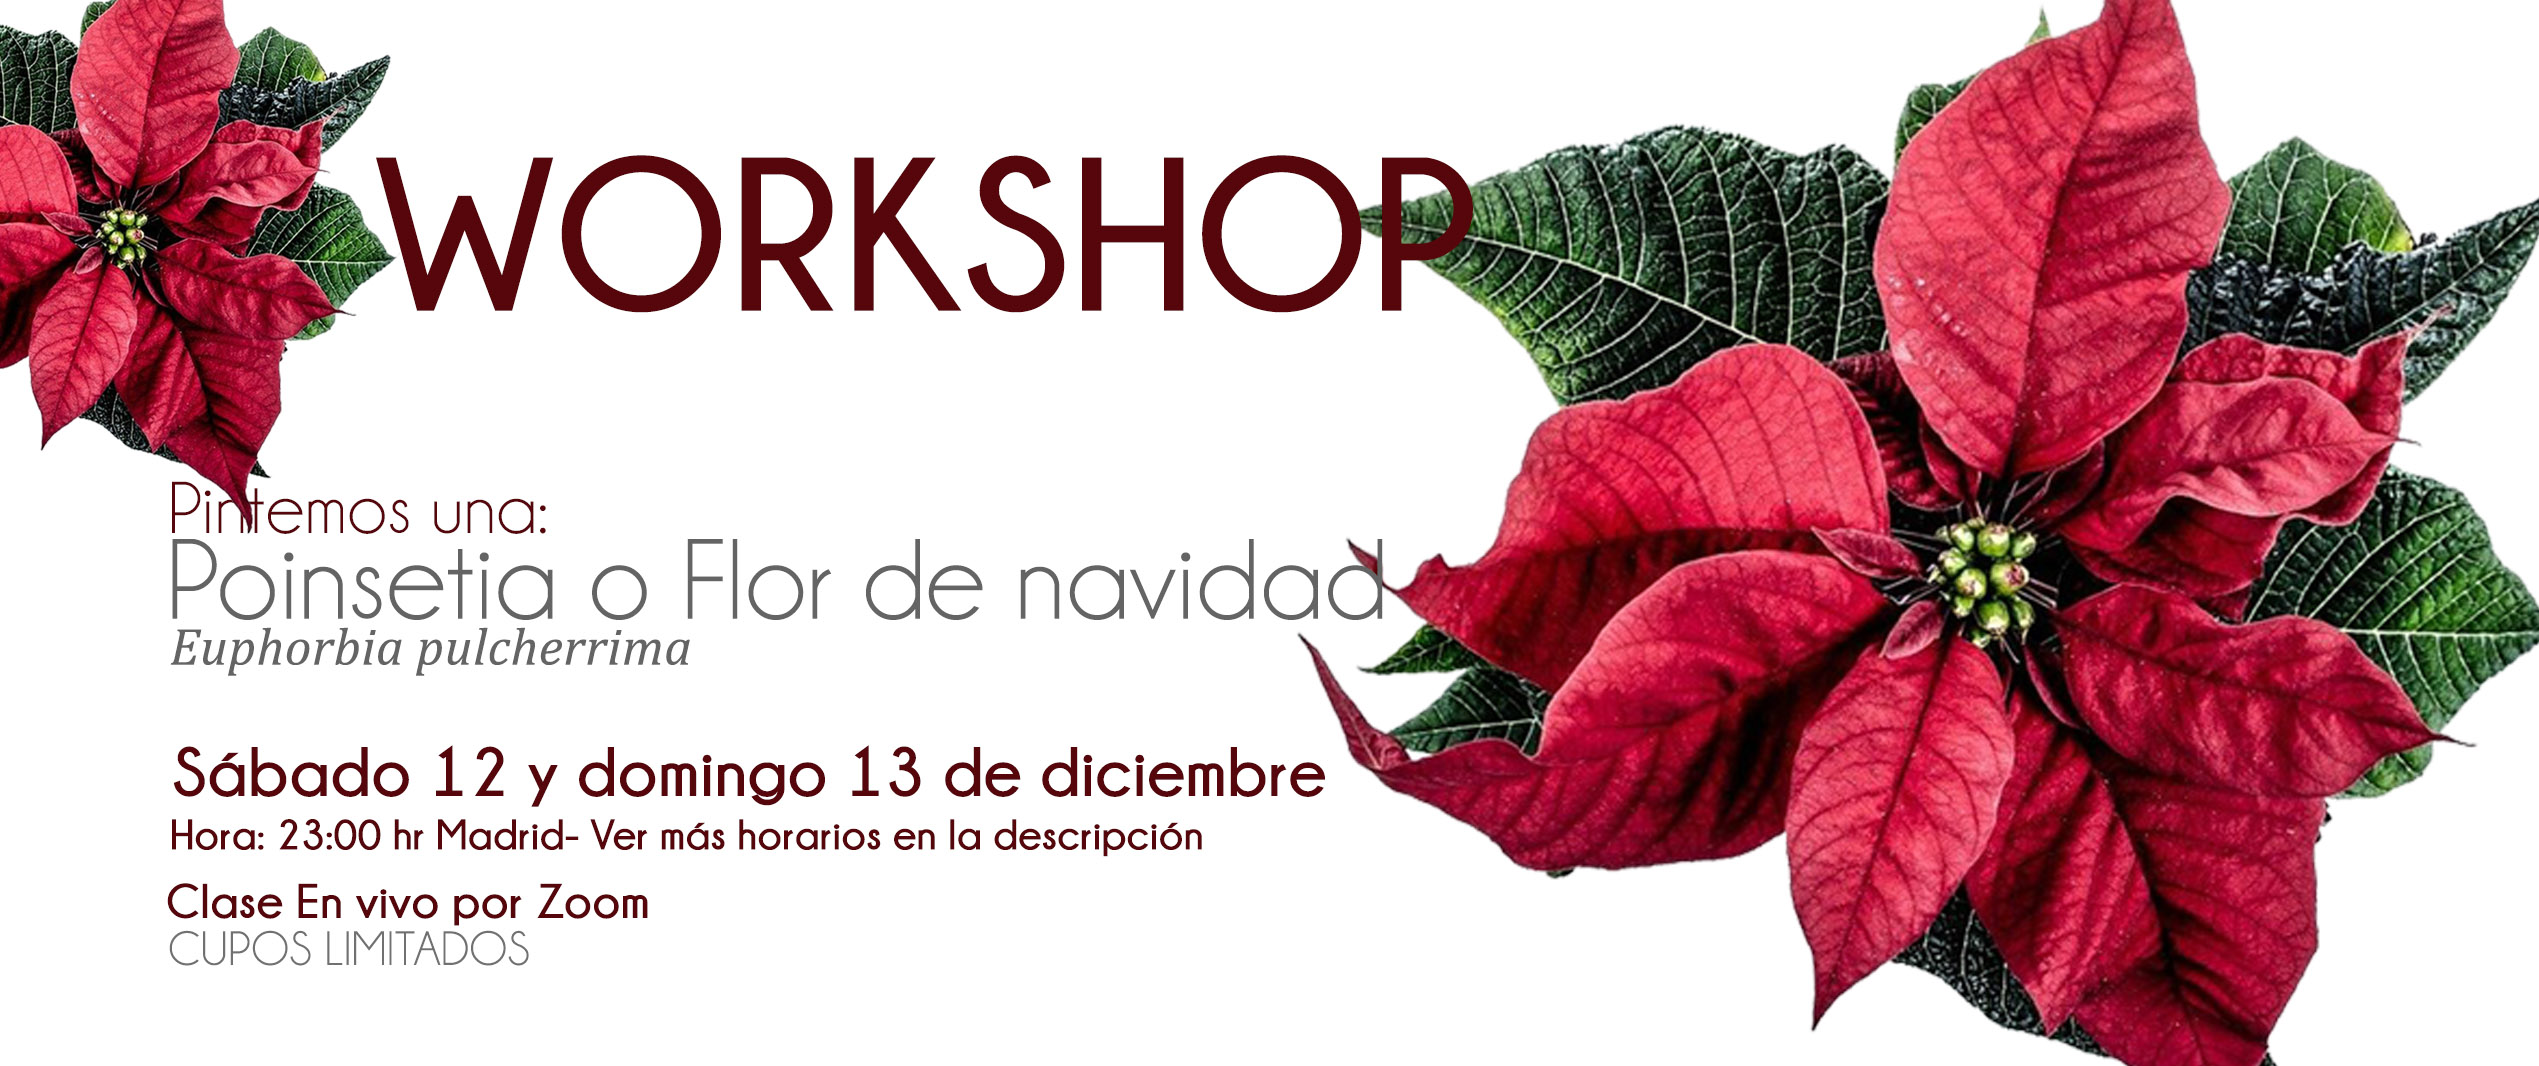 Workshop pintemos un Membrillo